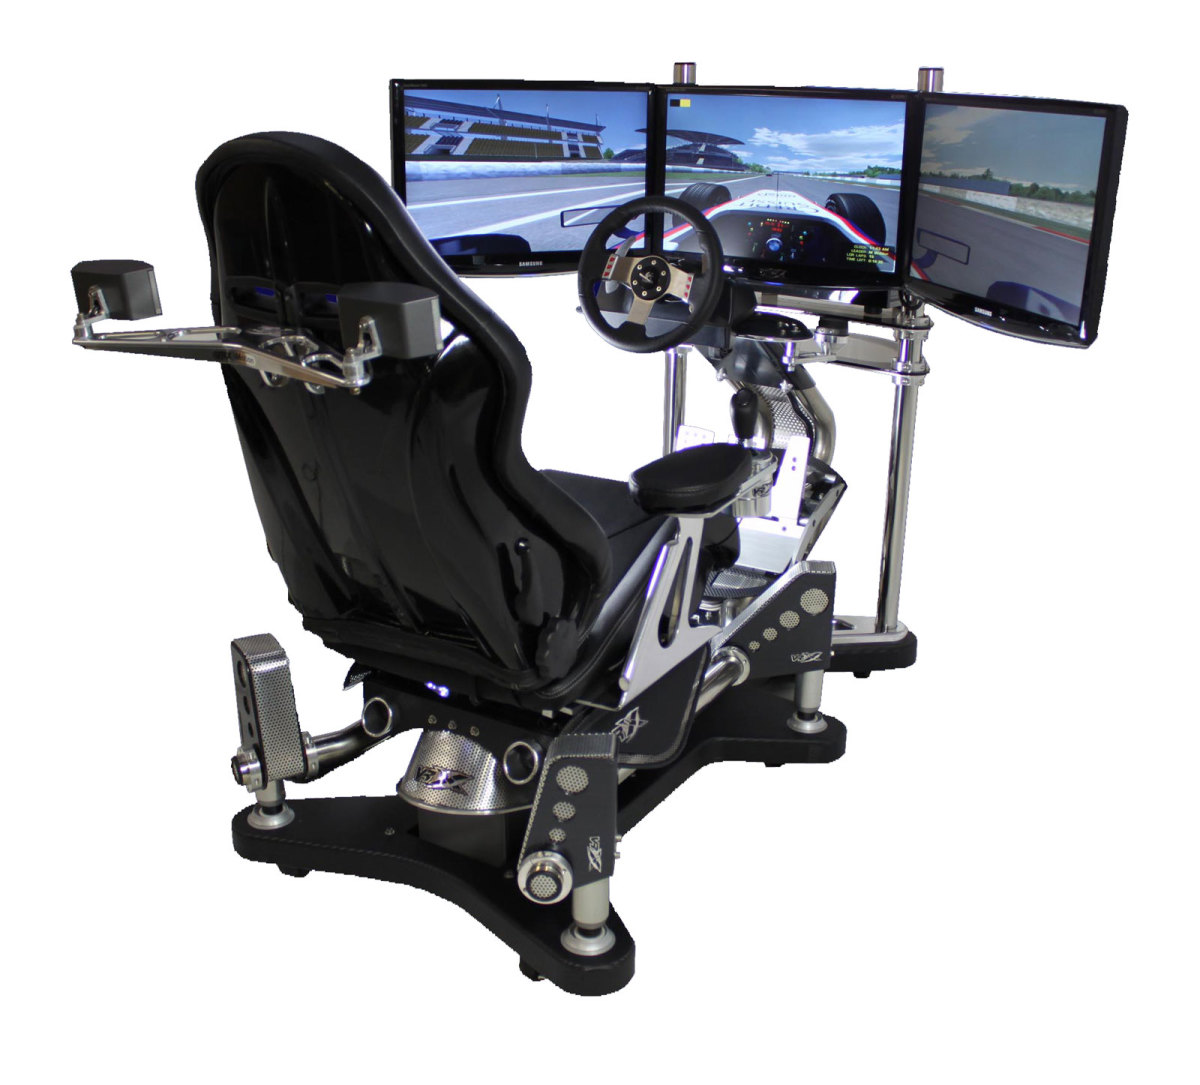 Gaming Chairs For Sale. Unique Games Chair For All Consoles, Wii, Playstation, Xbox, & PC